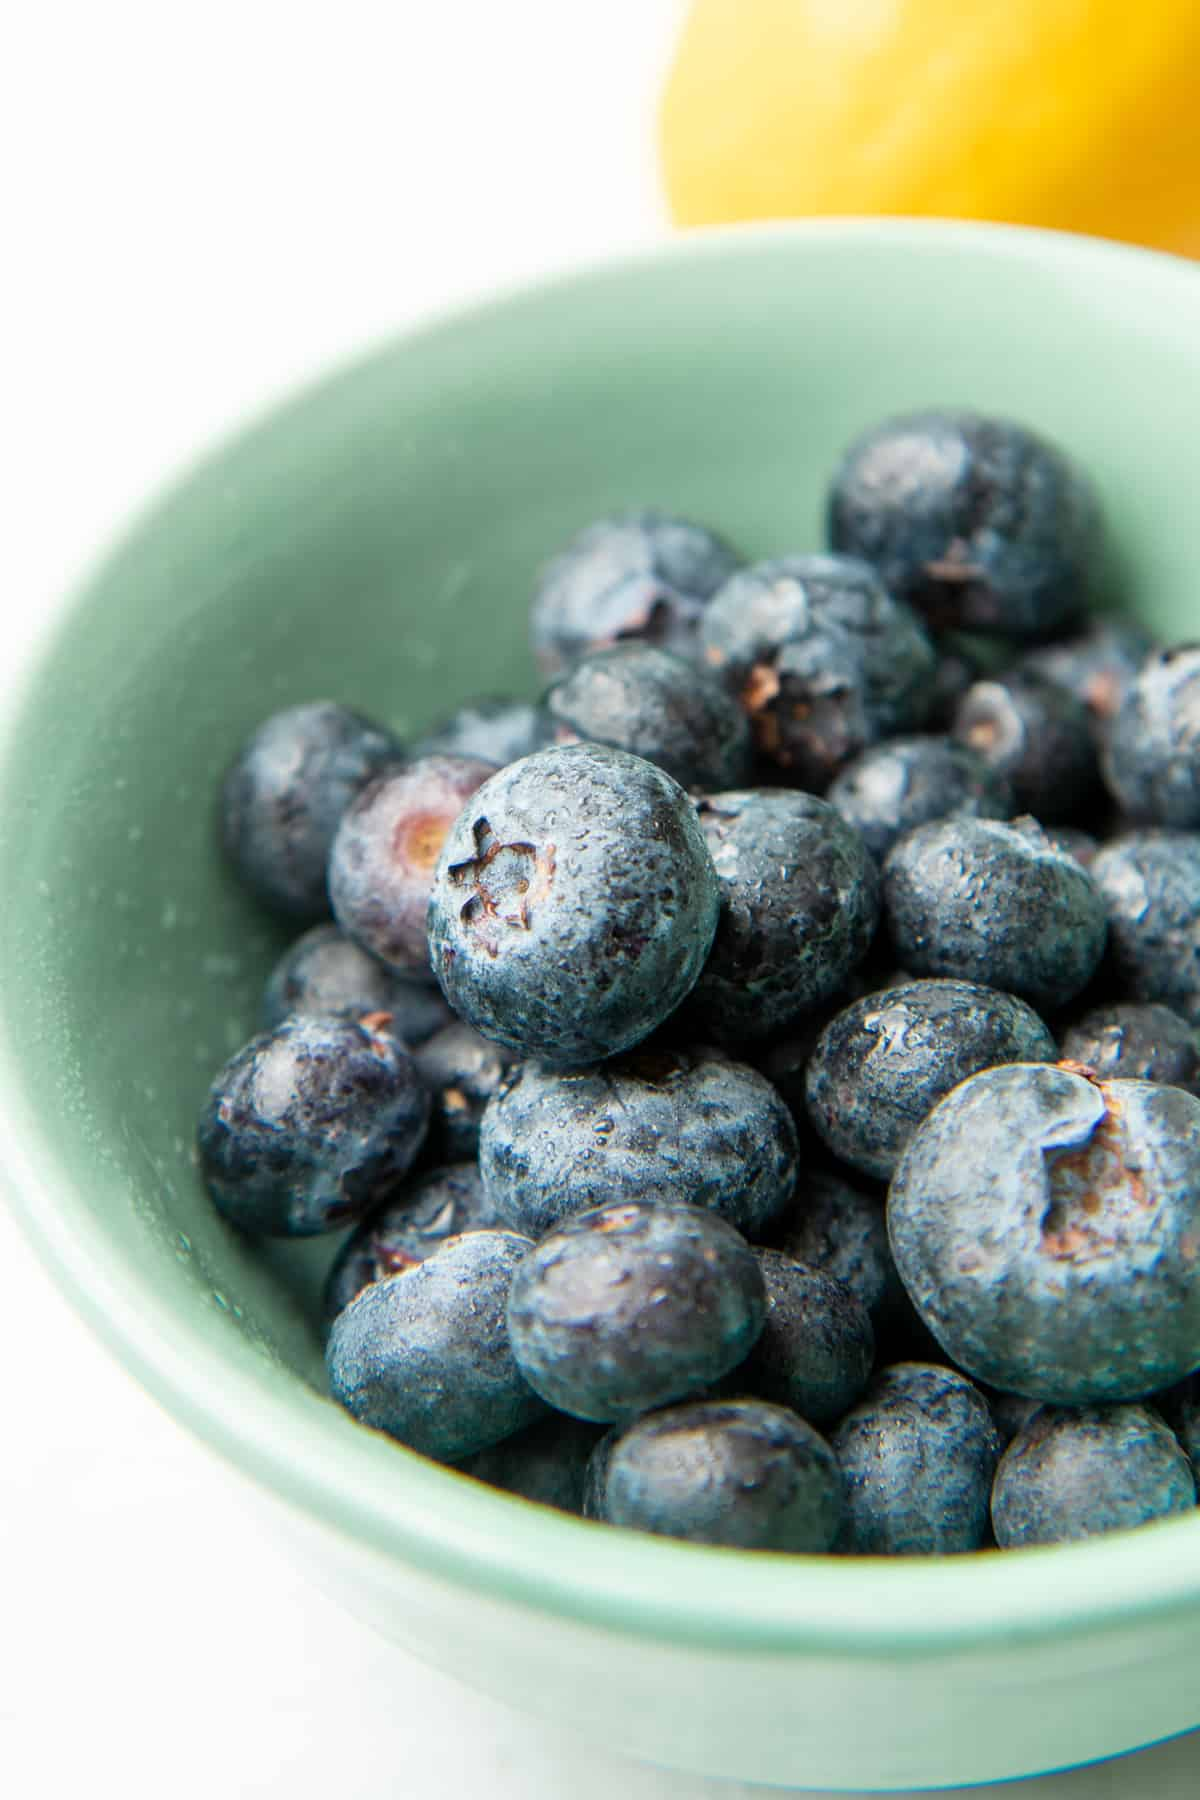 Blueberries sit in a teal bowl.